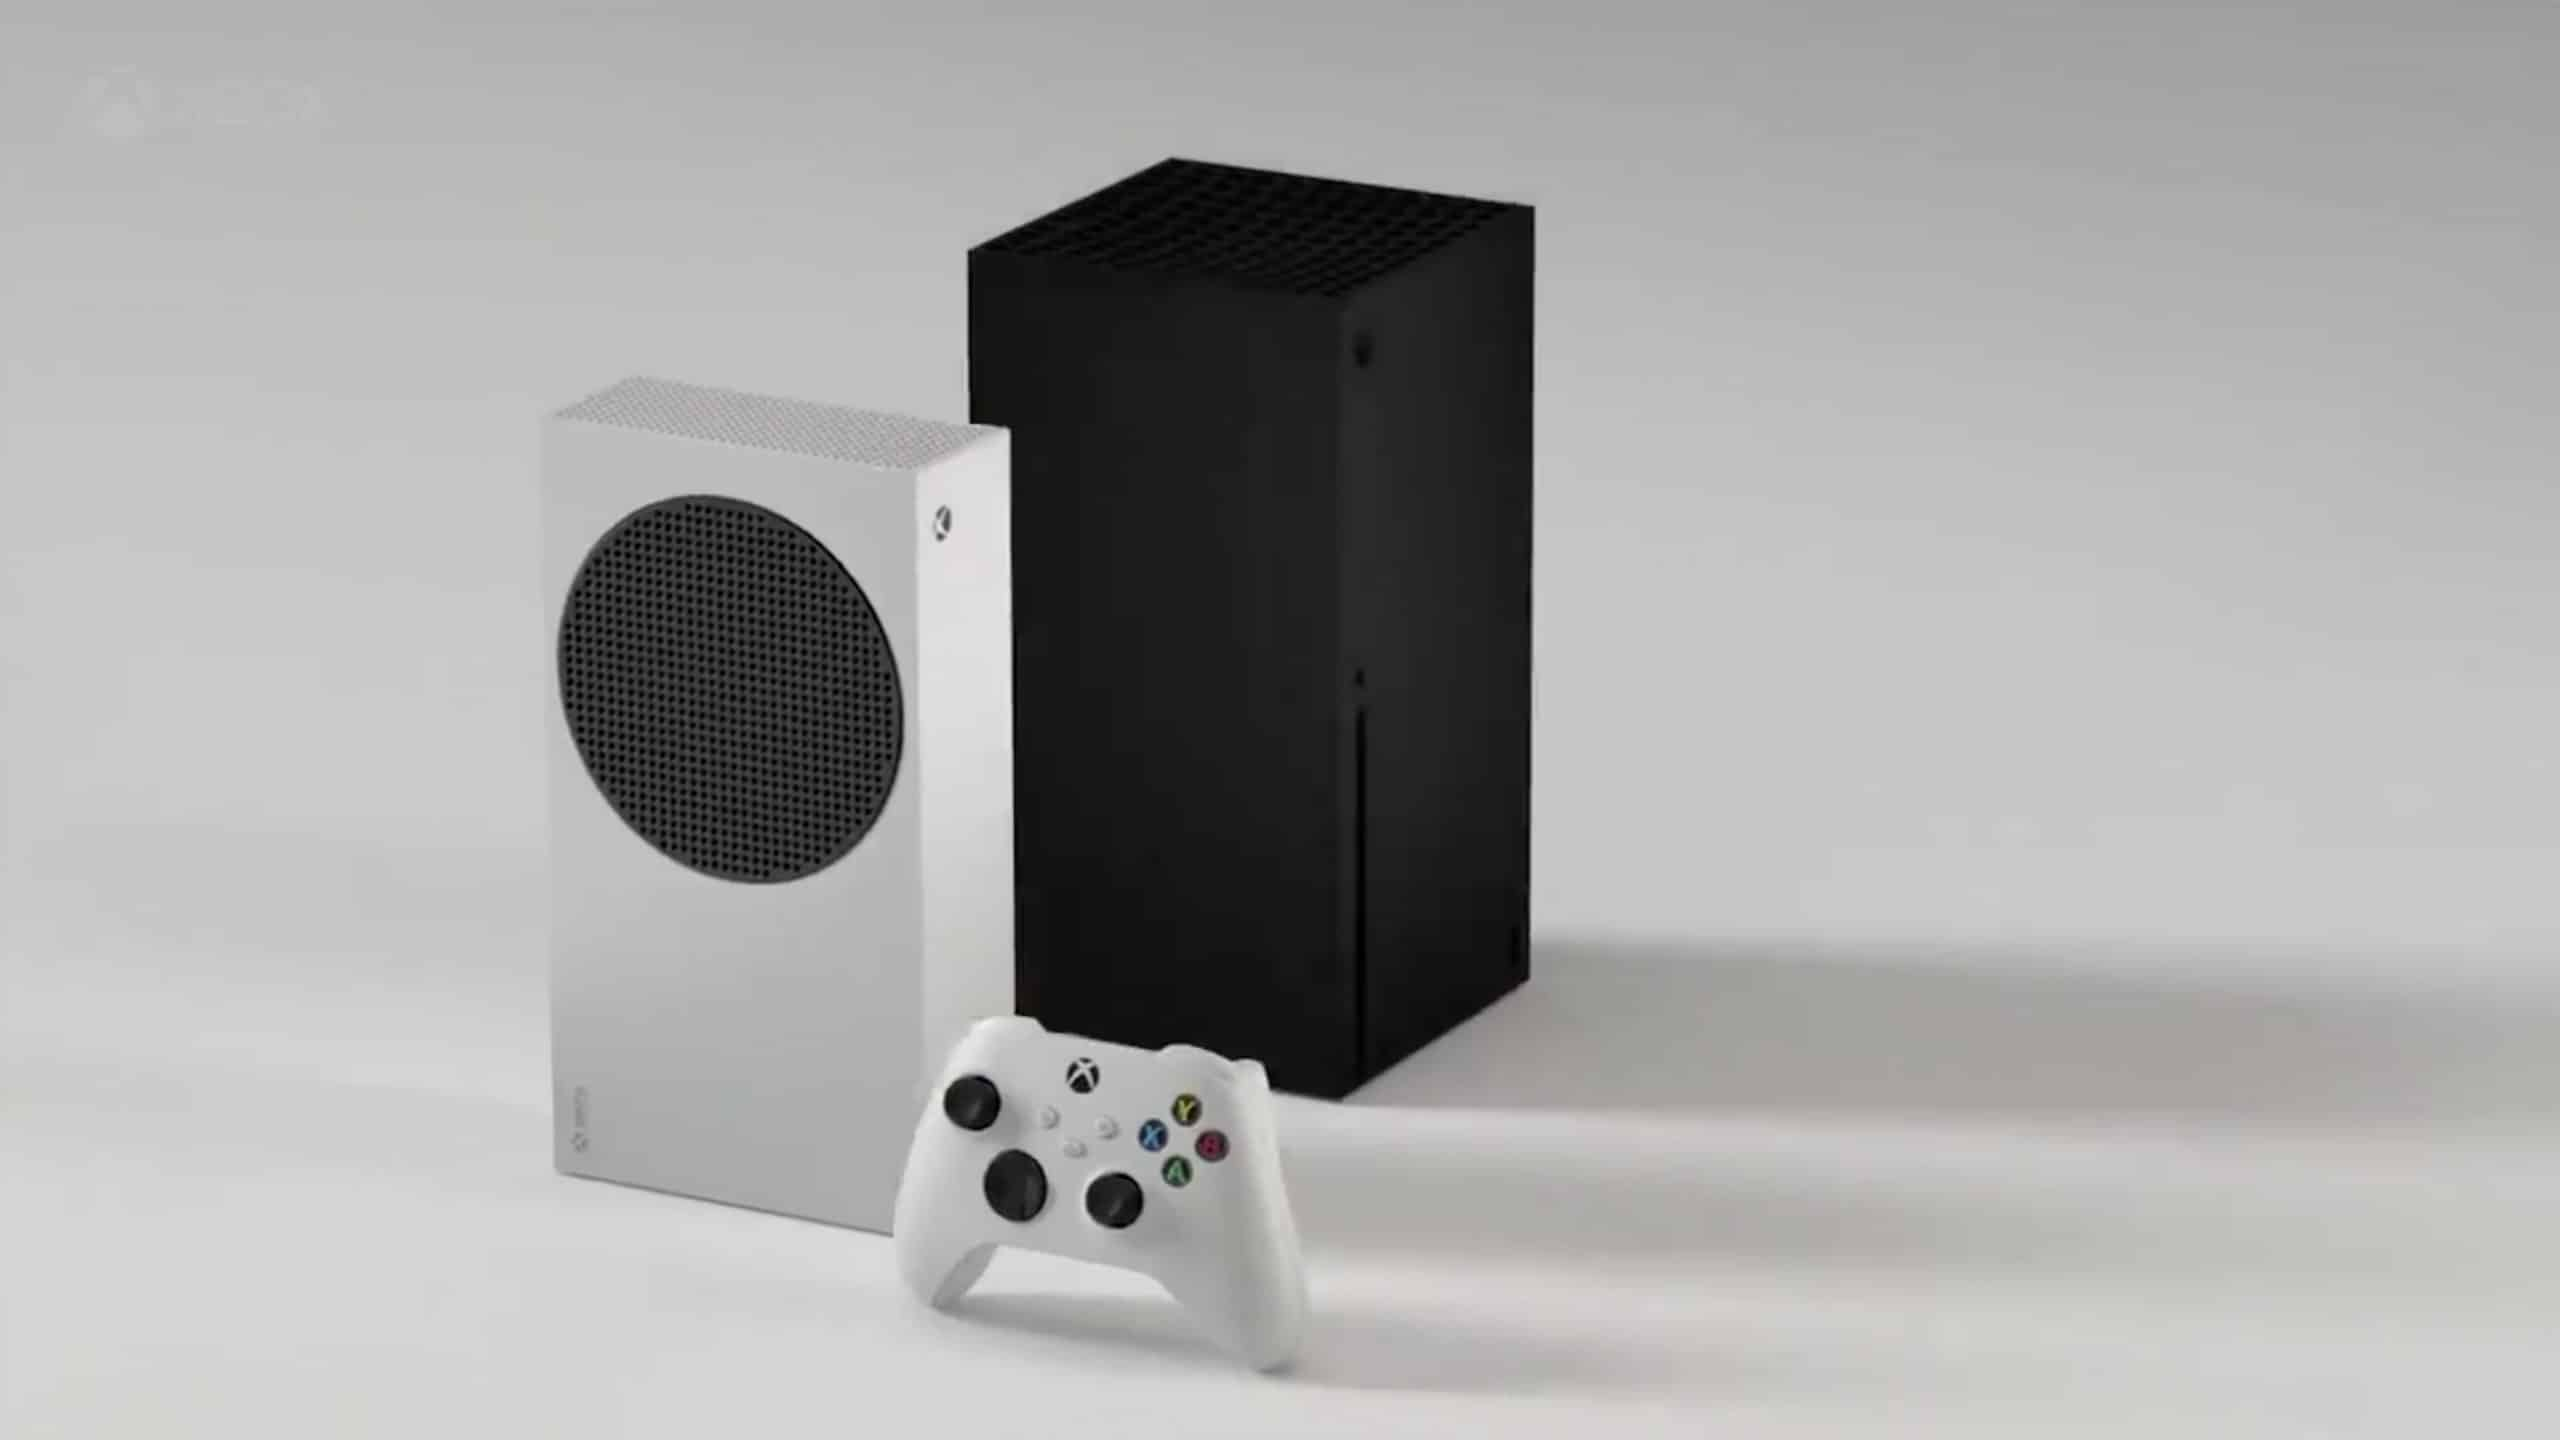 Xbox Series X Roundup: Thoughts After Three Weeks, Does It Live Up?